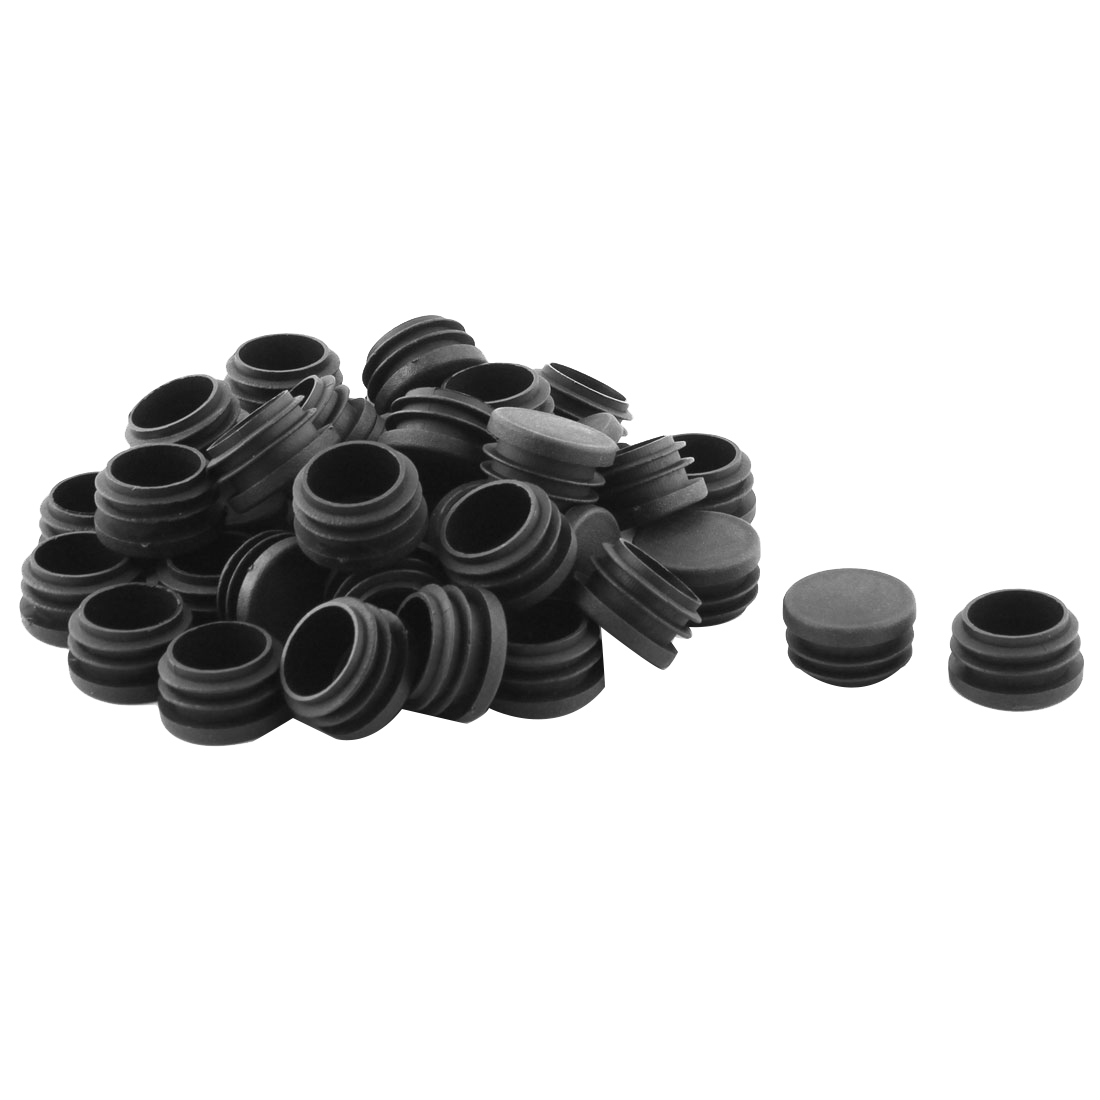 Desk Chair Feet Round Shaped Tube Pipe Inserts End Caps Covers 40 PCS